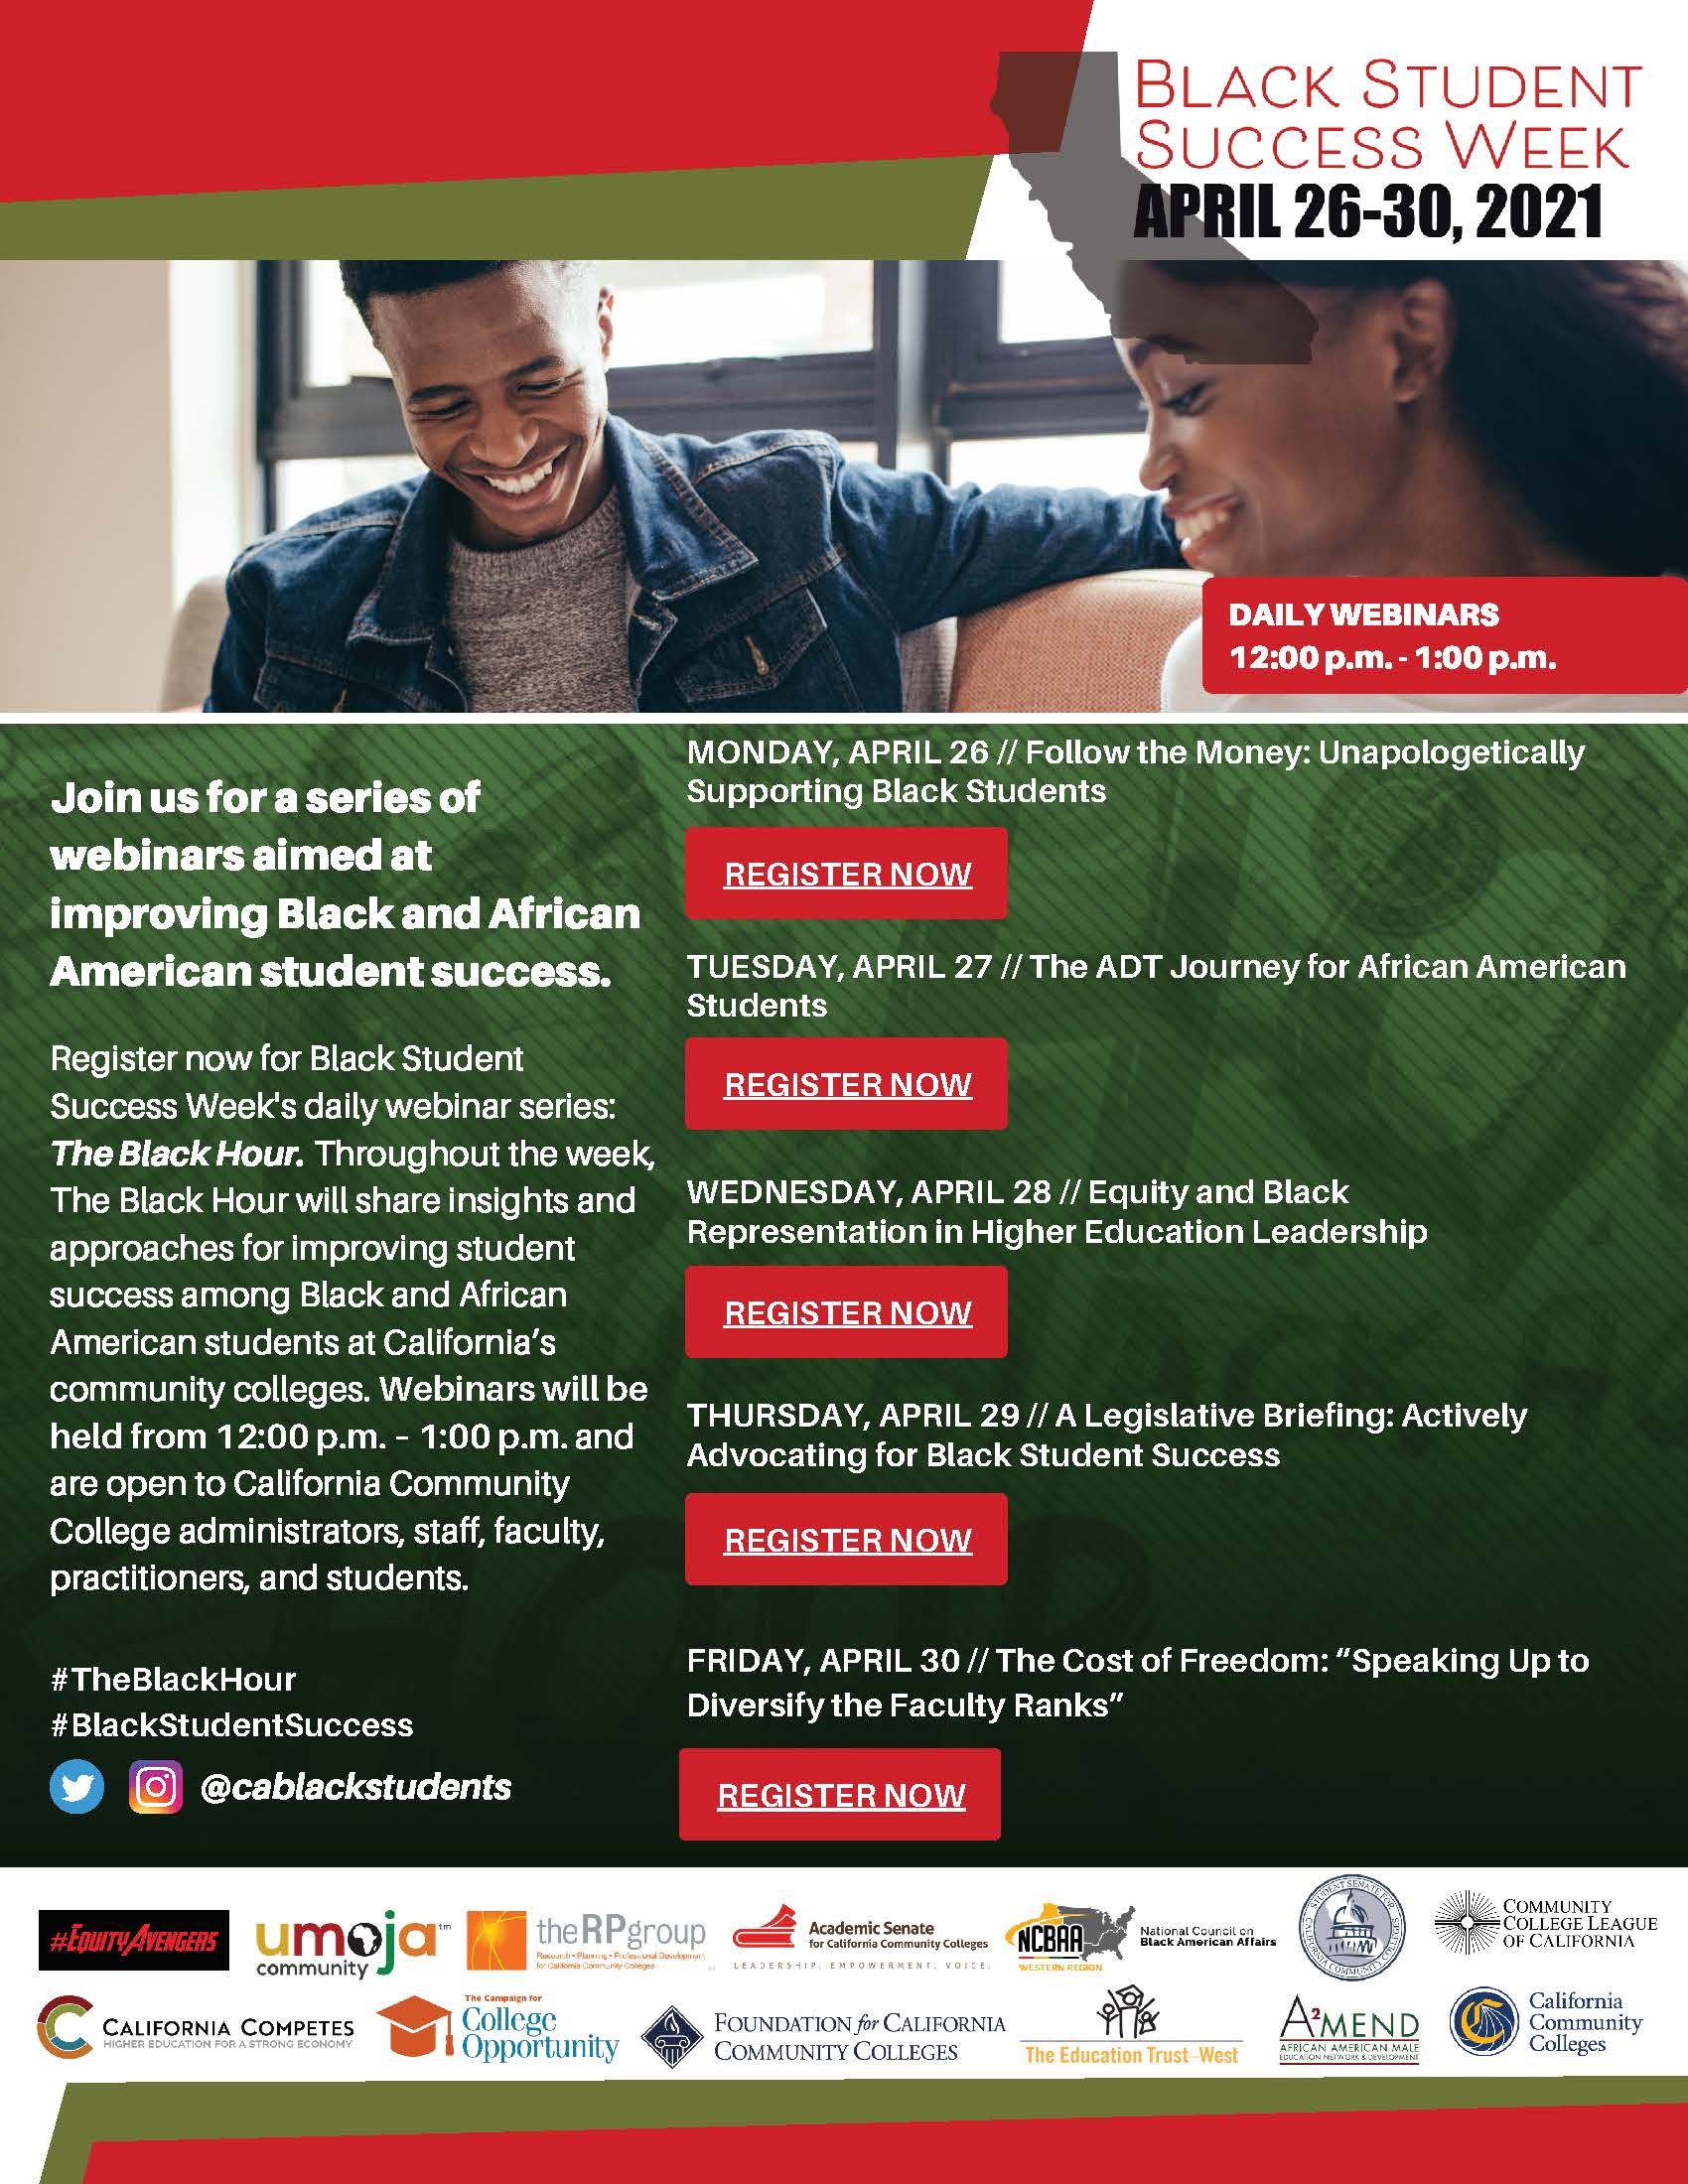 Black Student Success Week information, featuring two students